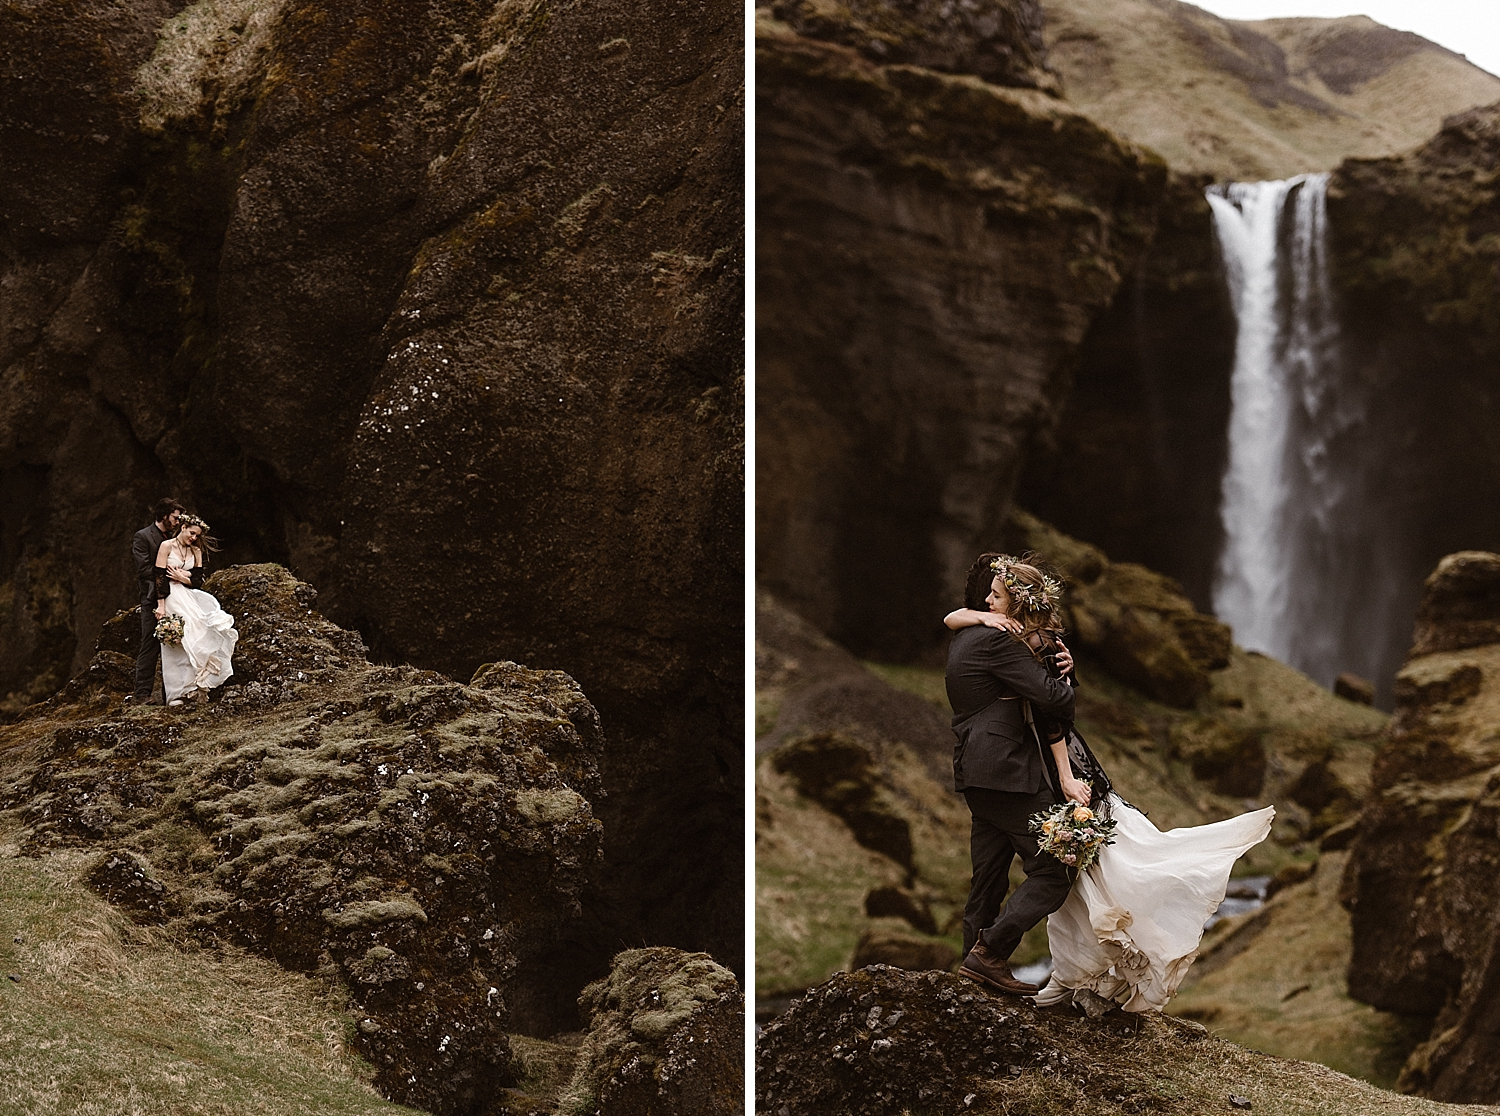 As they rounded the bend, there it was - Kvernufoss waterfall. They paused to take in it's grandeur with the wind whipping around them. This intimate Iceland elopement captured by Maddie Mae Photography.